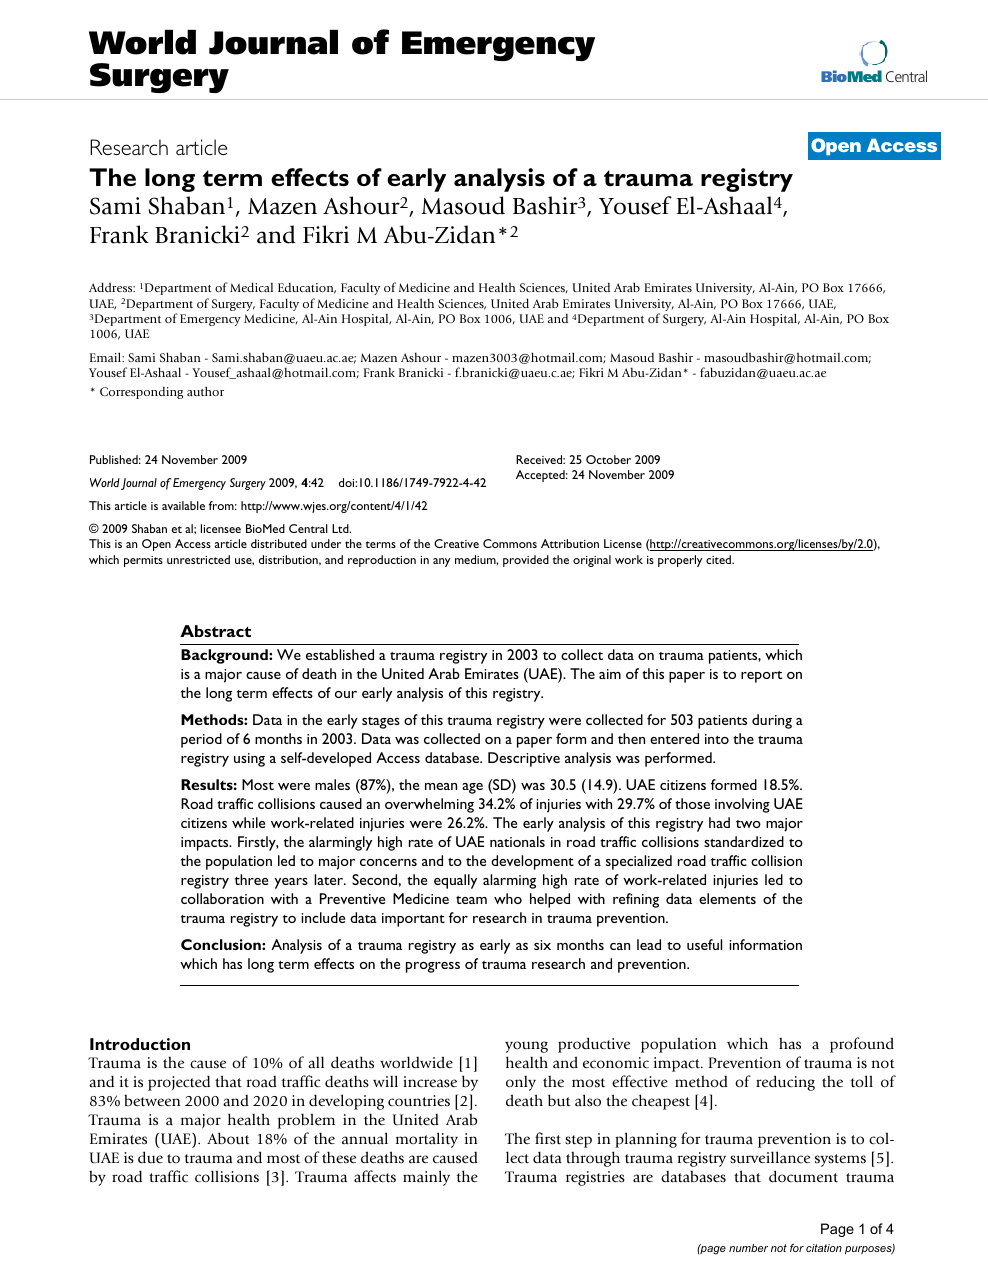 The long term effects of early analysis of a trauma registry.